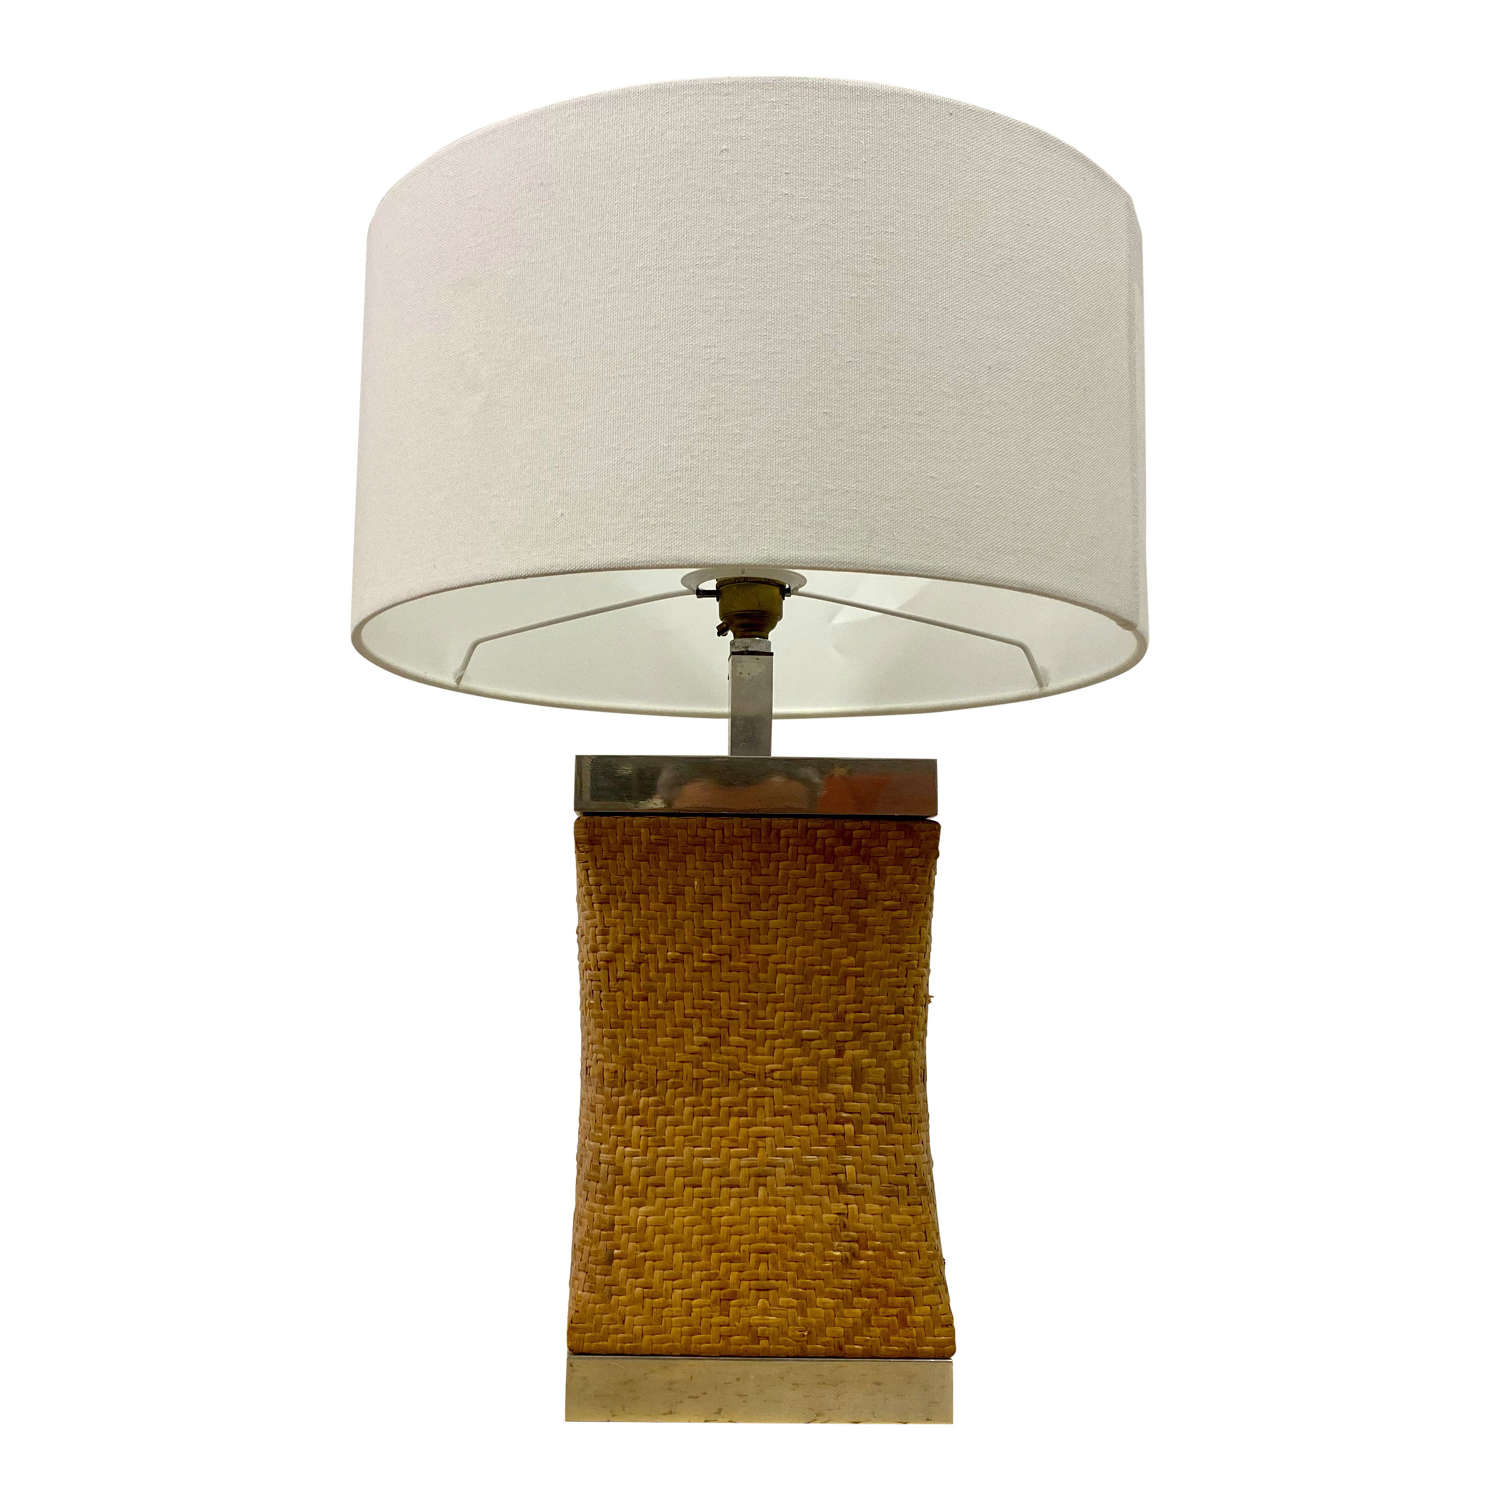 1970s rattan and chrome table lamp